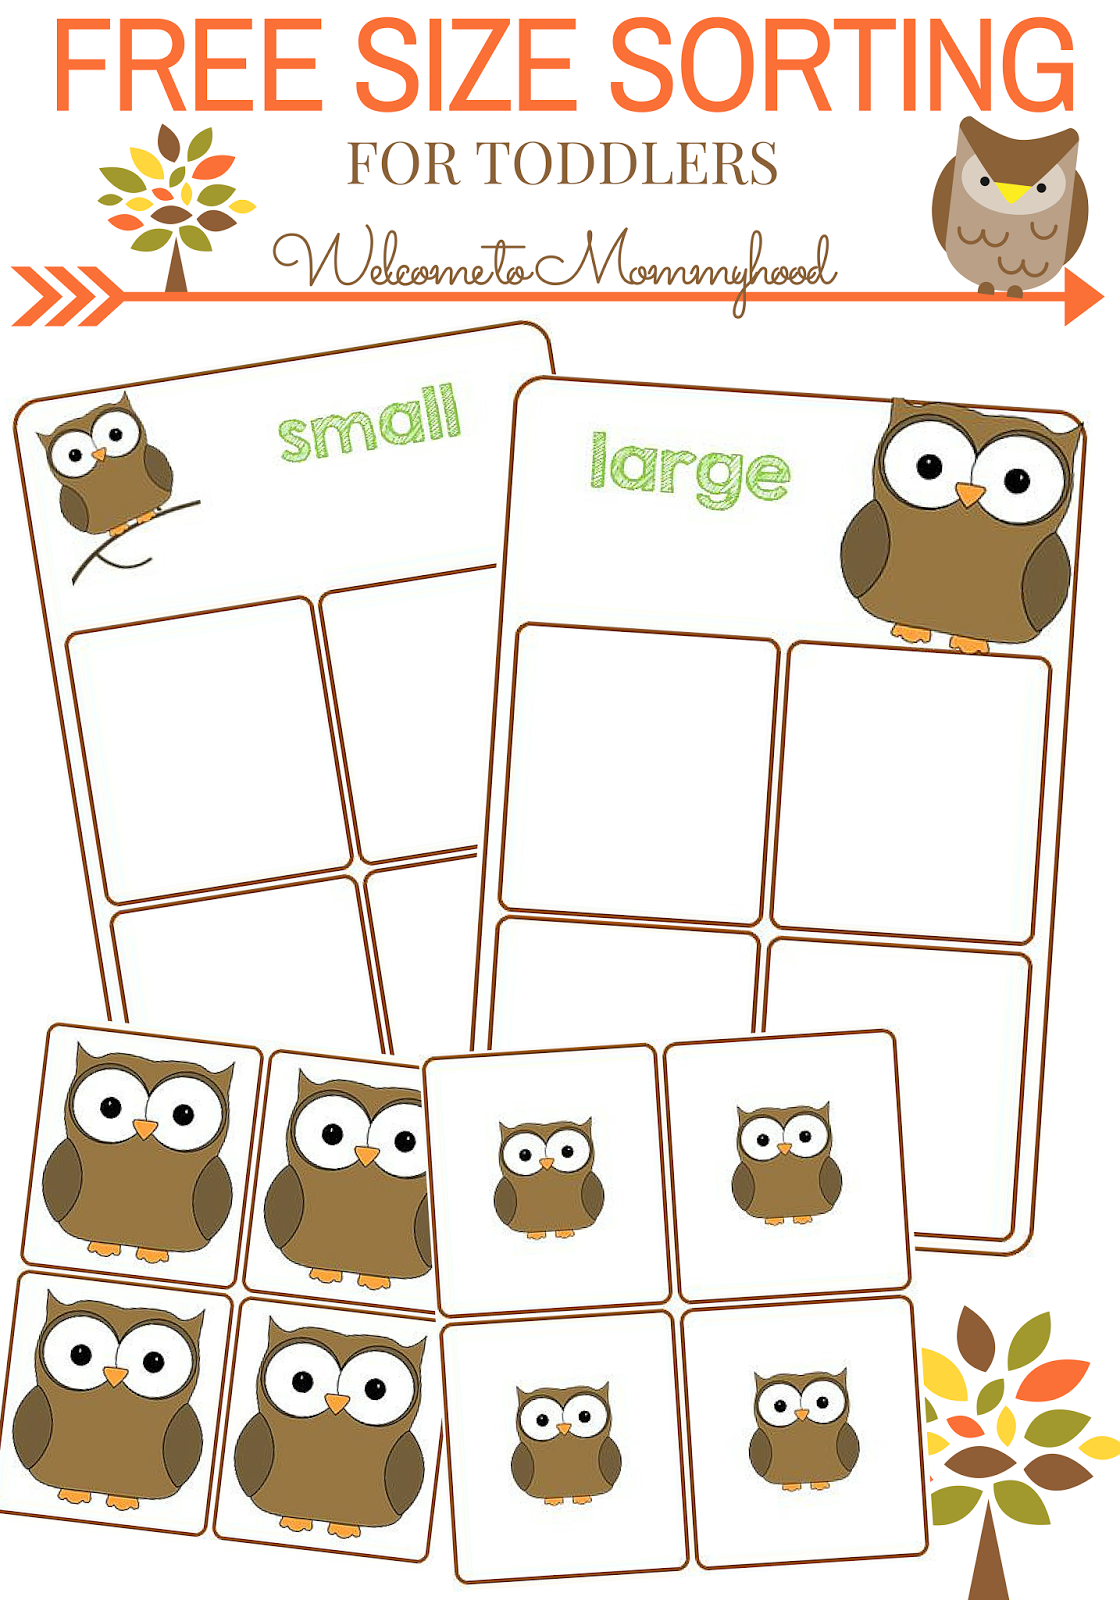 Free Size Sorting Printable For Toddlers By Welcome To